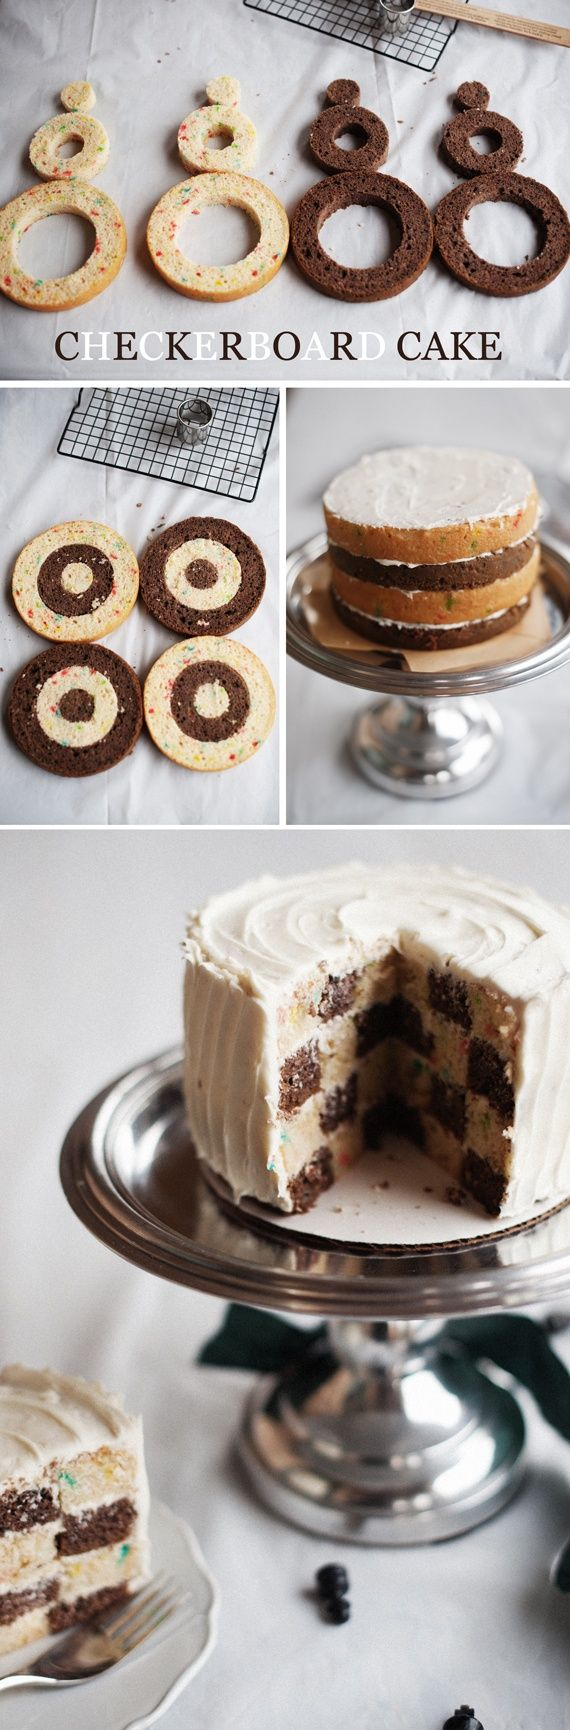 Hide a checkerboard surprise inside your next birthday cake.